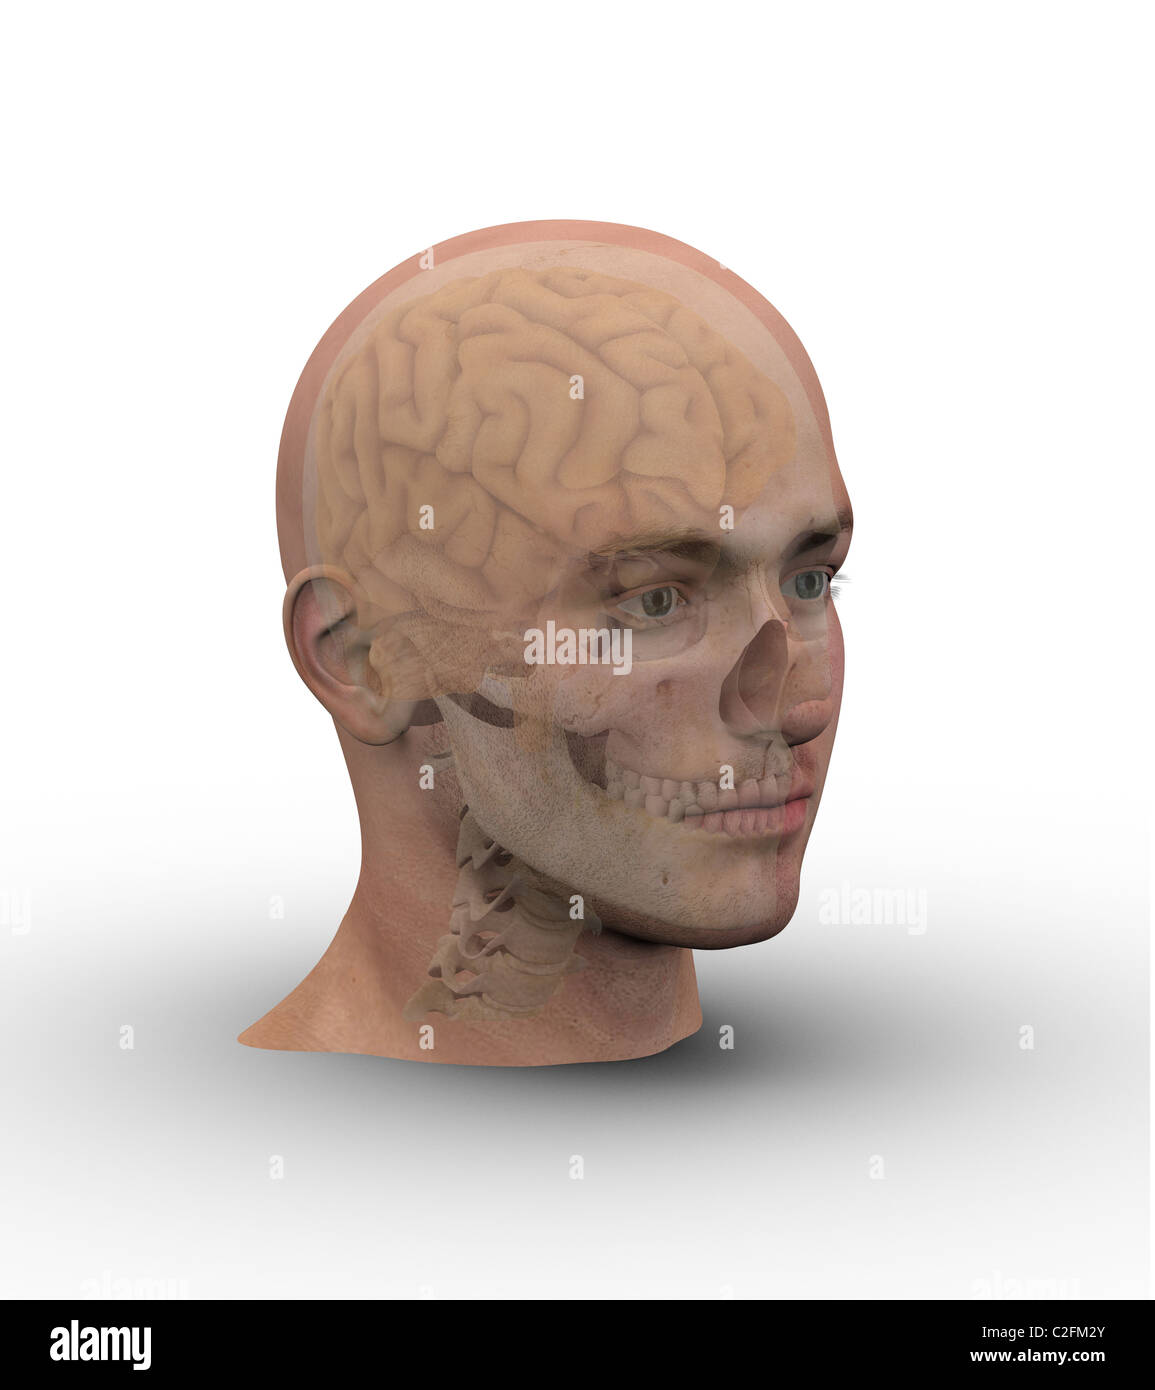 Male head with skull and brain showing through transparent skin. - Stock Image